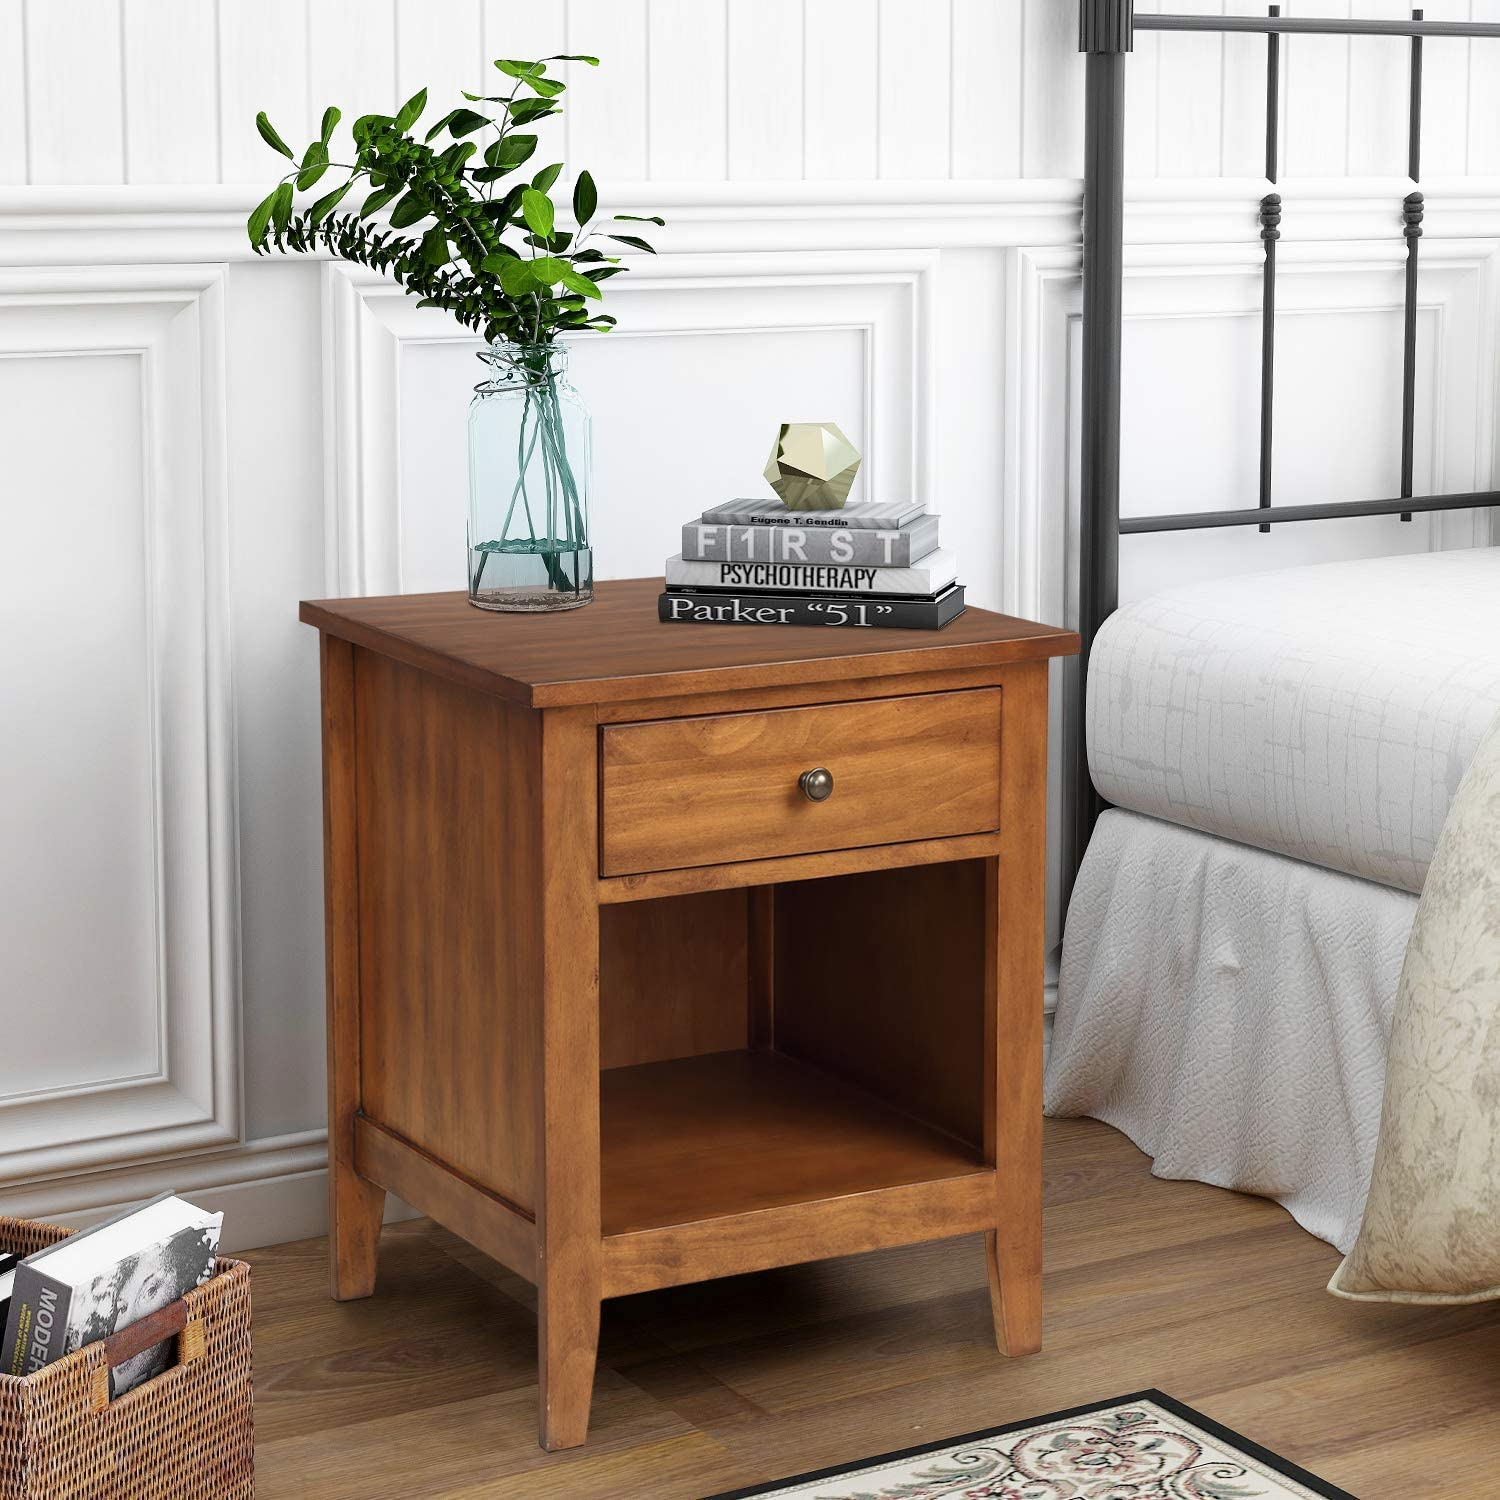 SSLine Nightstand End Table,Solid Wood Bedside Table with Drawer and  Storage Shelf,Sofa Couch Side Table Coffee Table Accent Table for Bedroom  Living